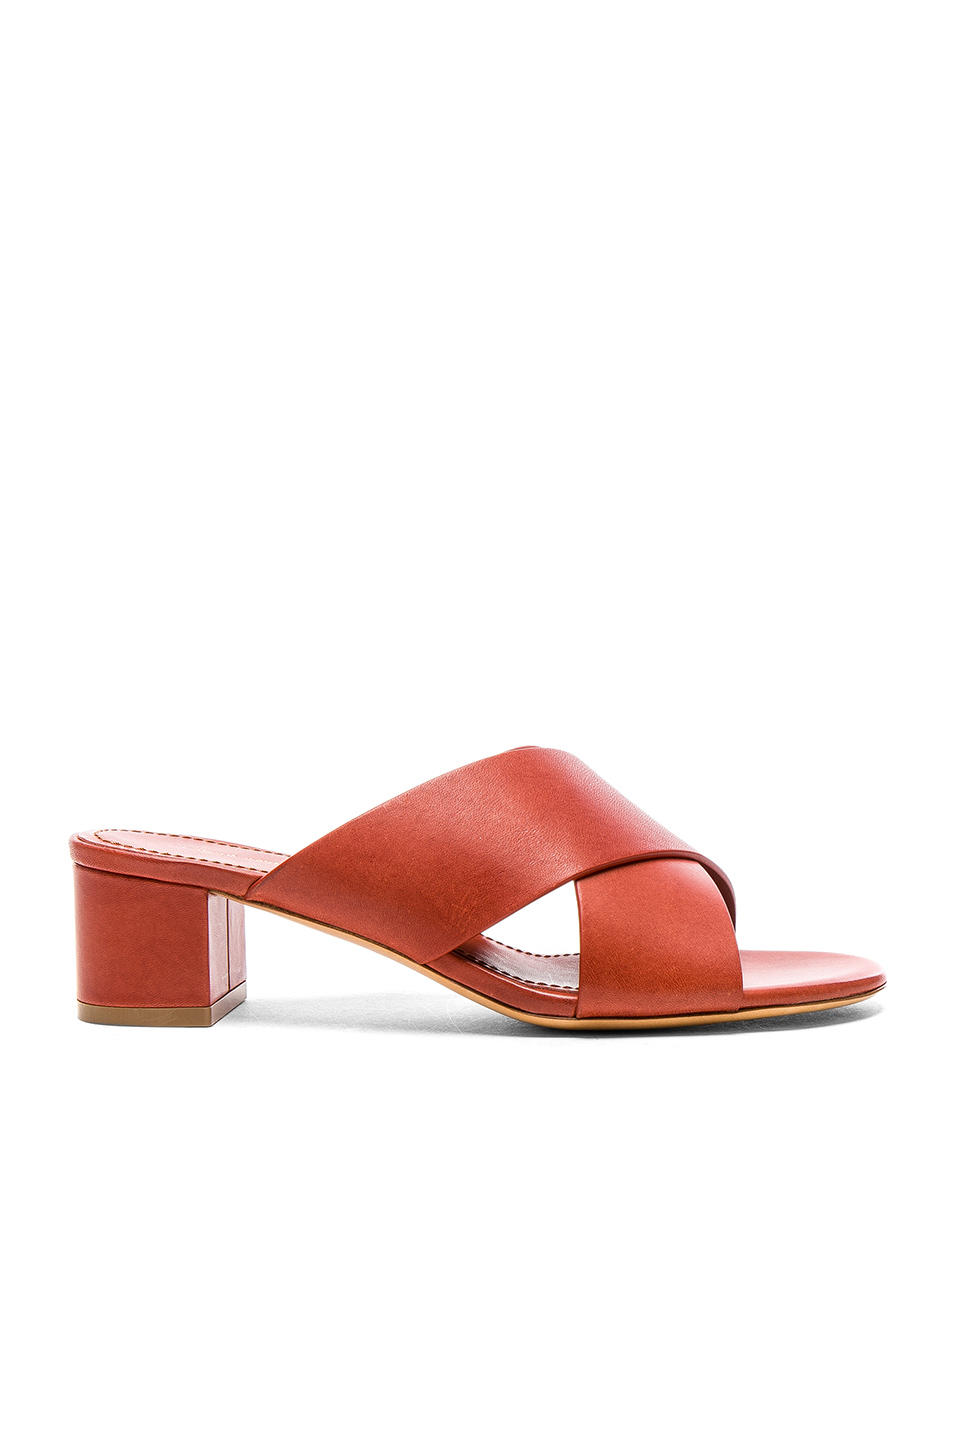 2fe307939 Buy Original Mansur Gavriel Leather 40mm X Strap Heels at Indonesia ...